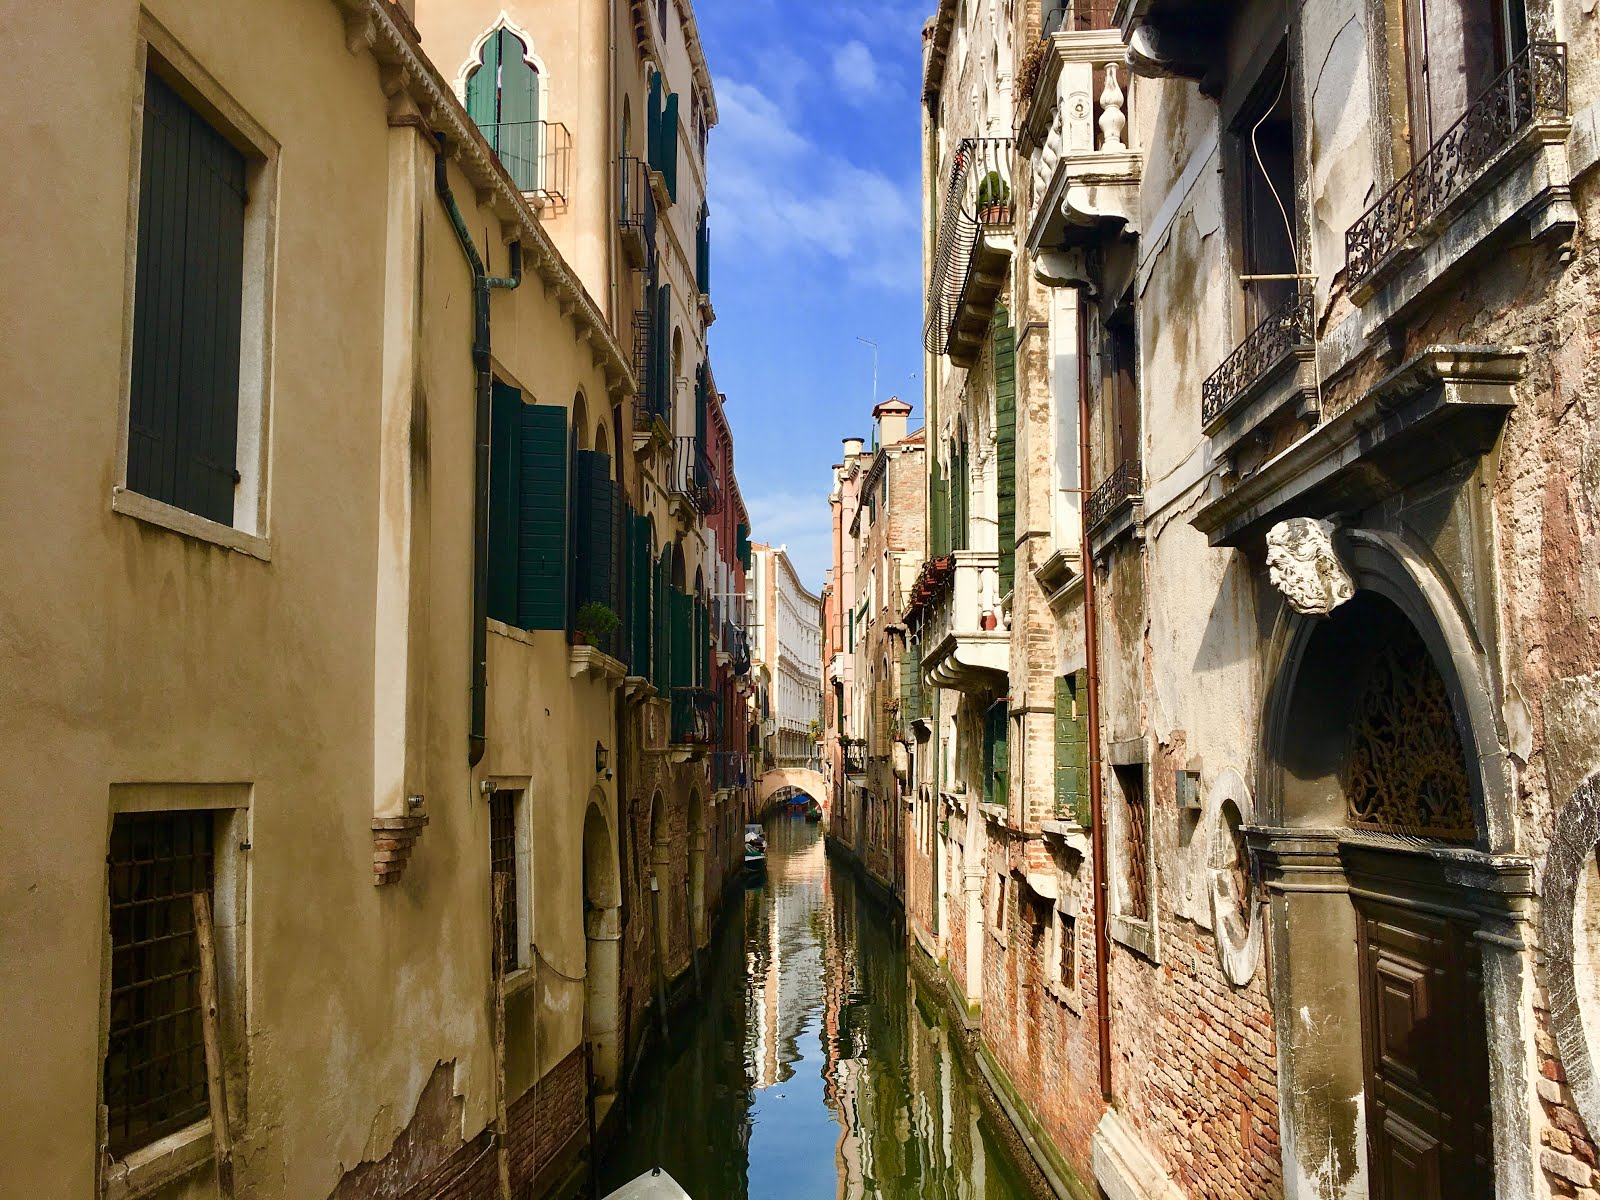 A Venice Waterway